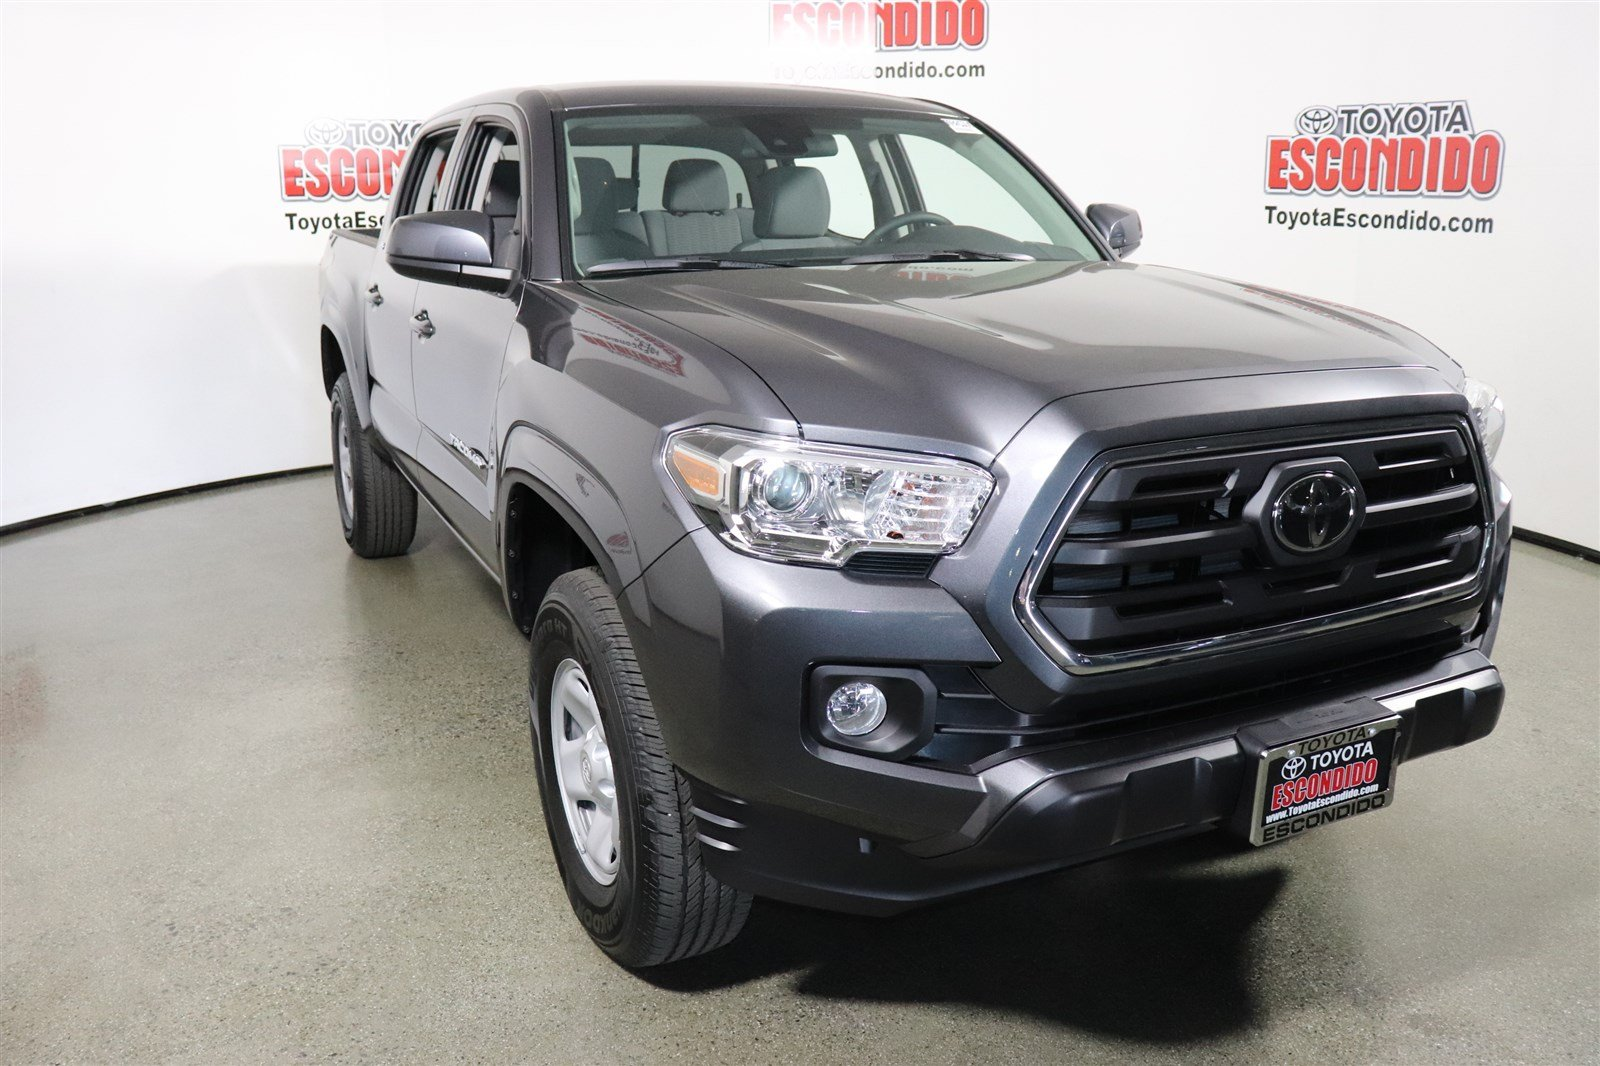 New 2019 Toyota Tacoma 2wd Sr5 Double Cab Pickup In Escondido 2011 Fuel Filter